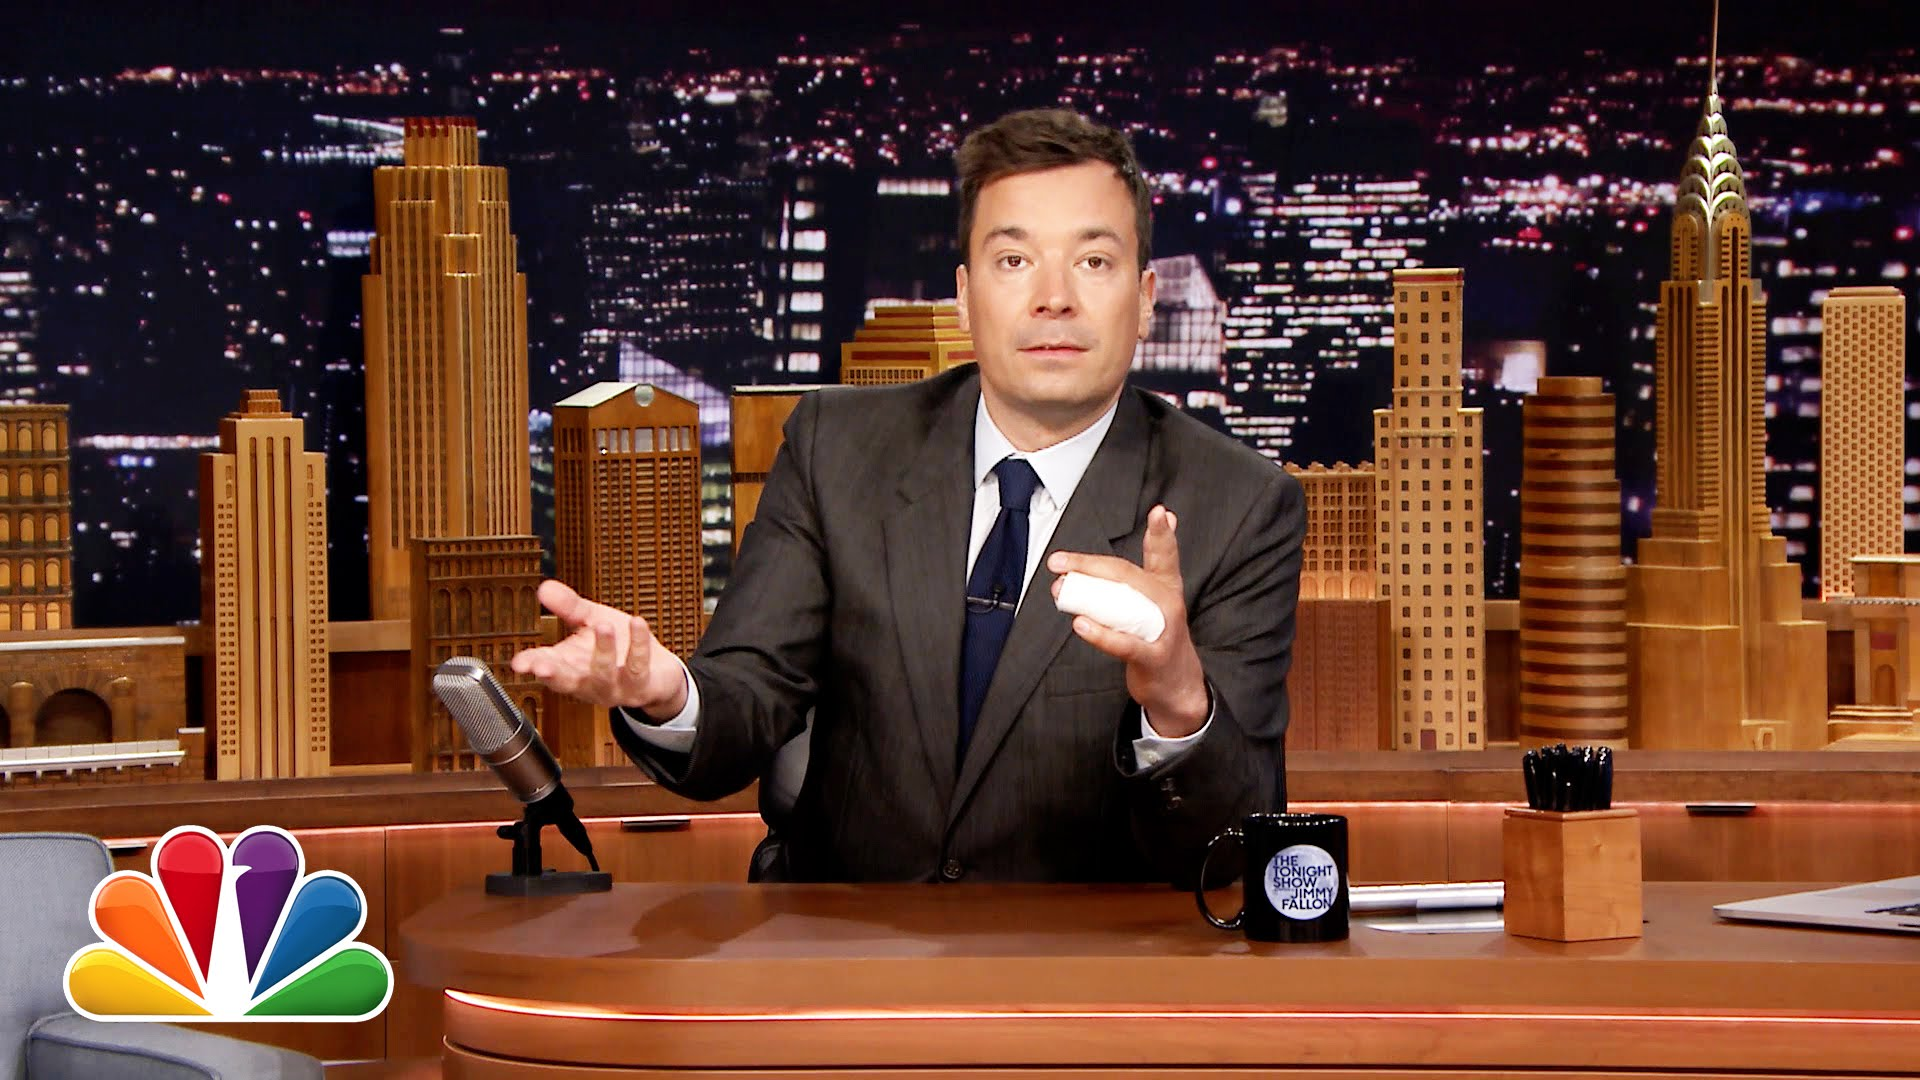 Watch Late Night with Jimmy Fallon Season  - In Reply To: Ashley Madison, Amazon Online